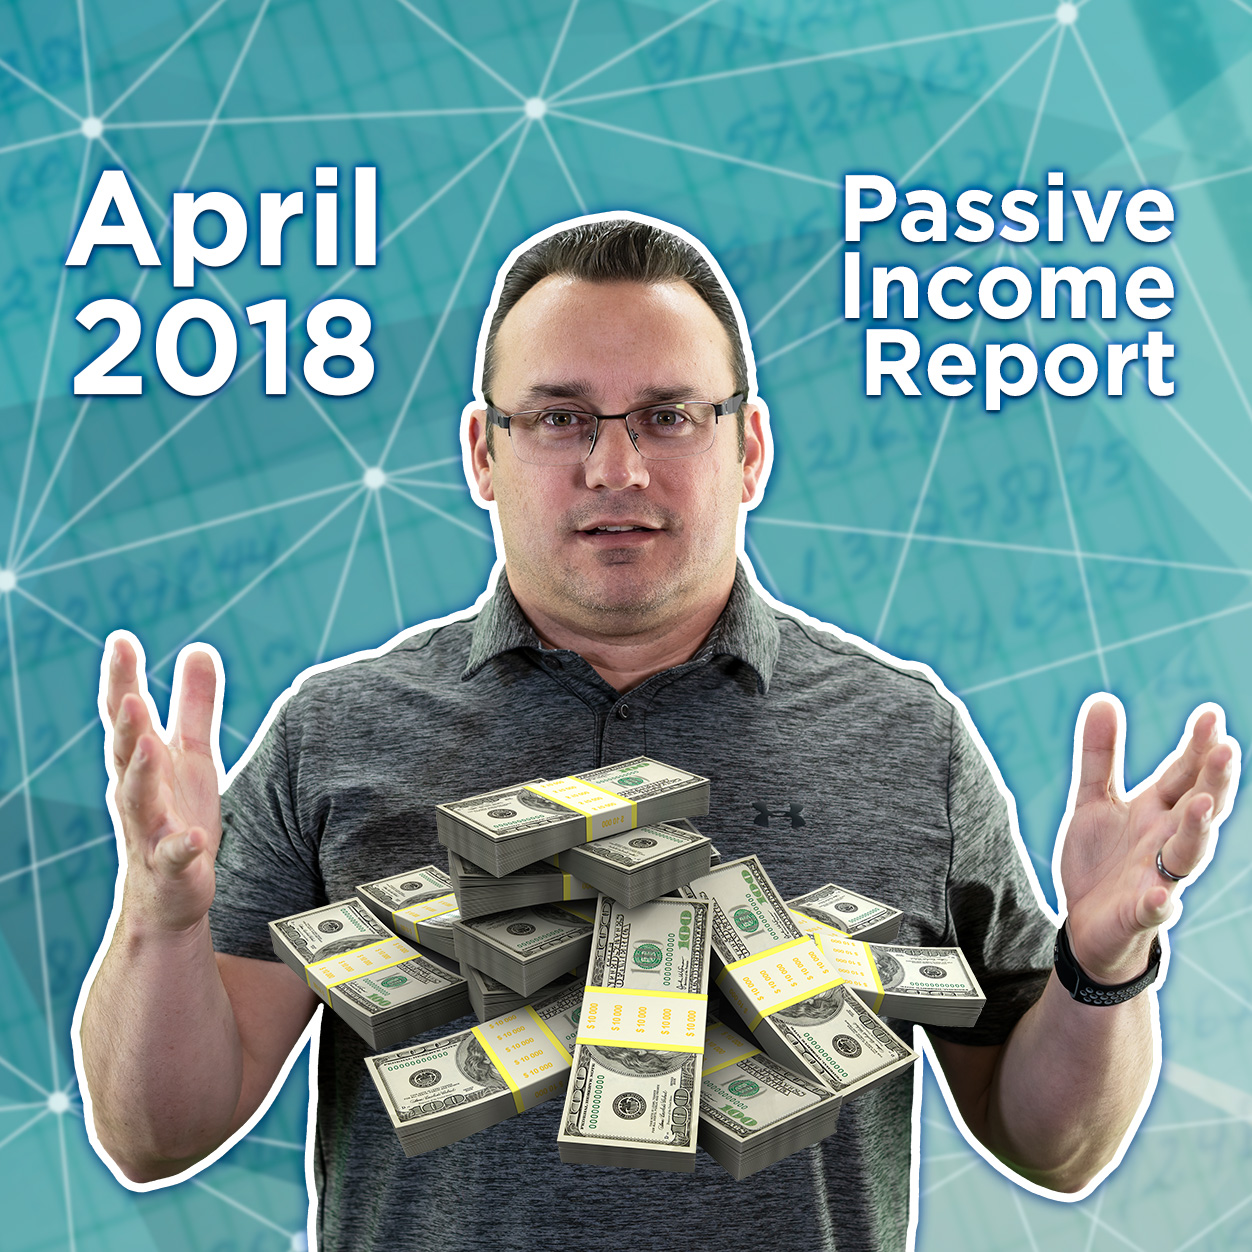 April 2018 Passive Income Report